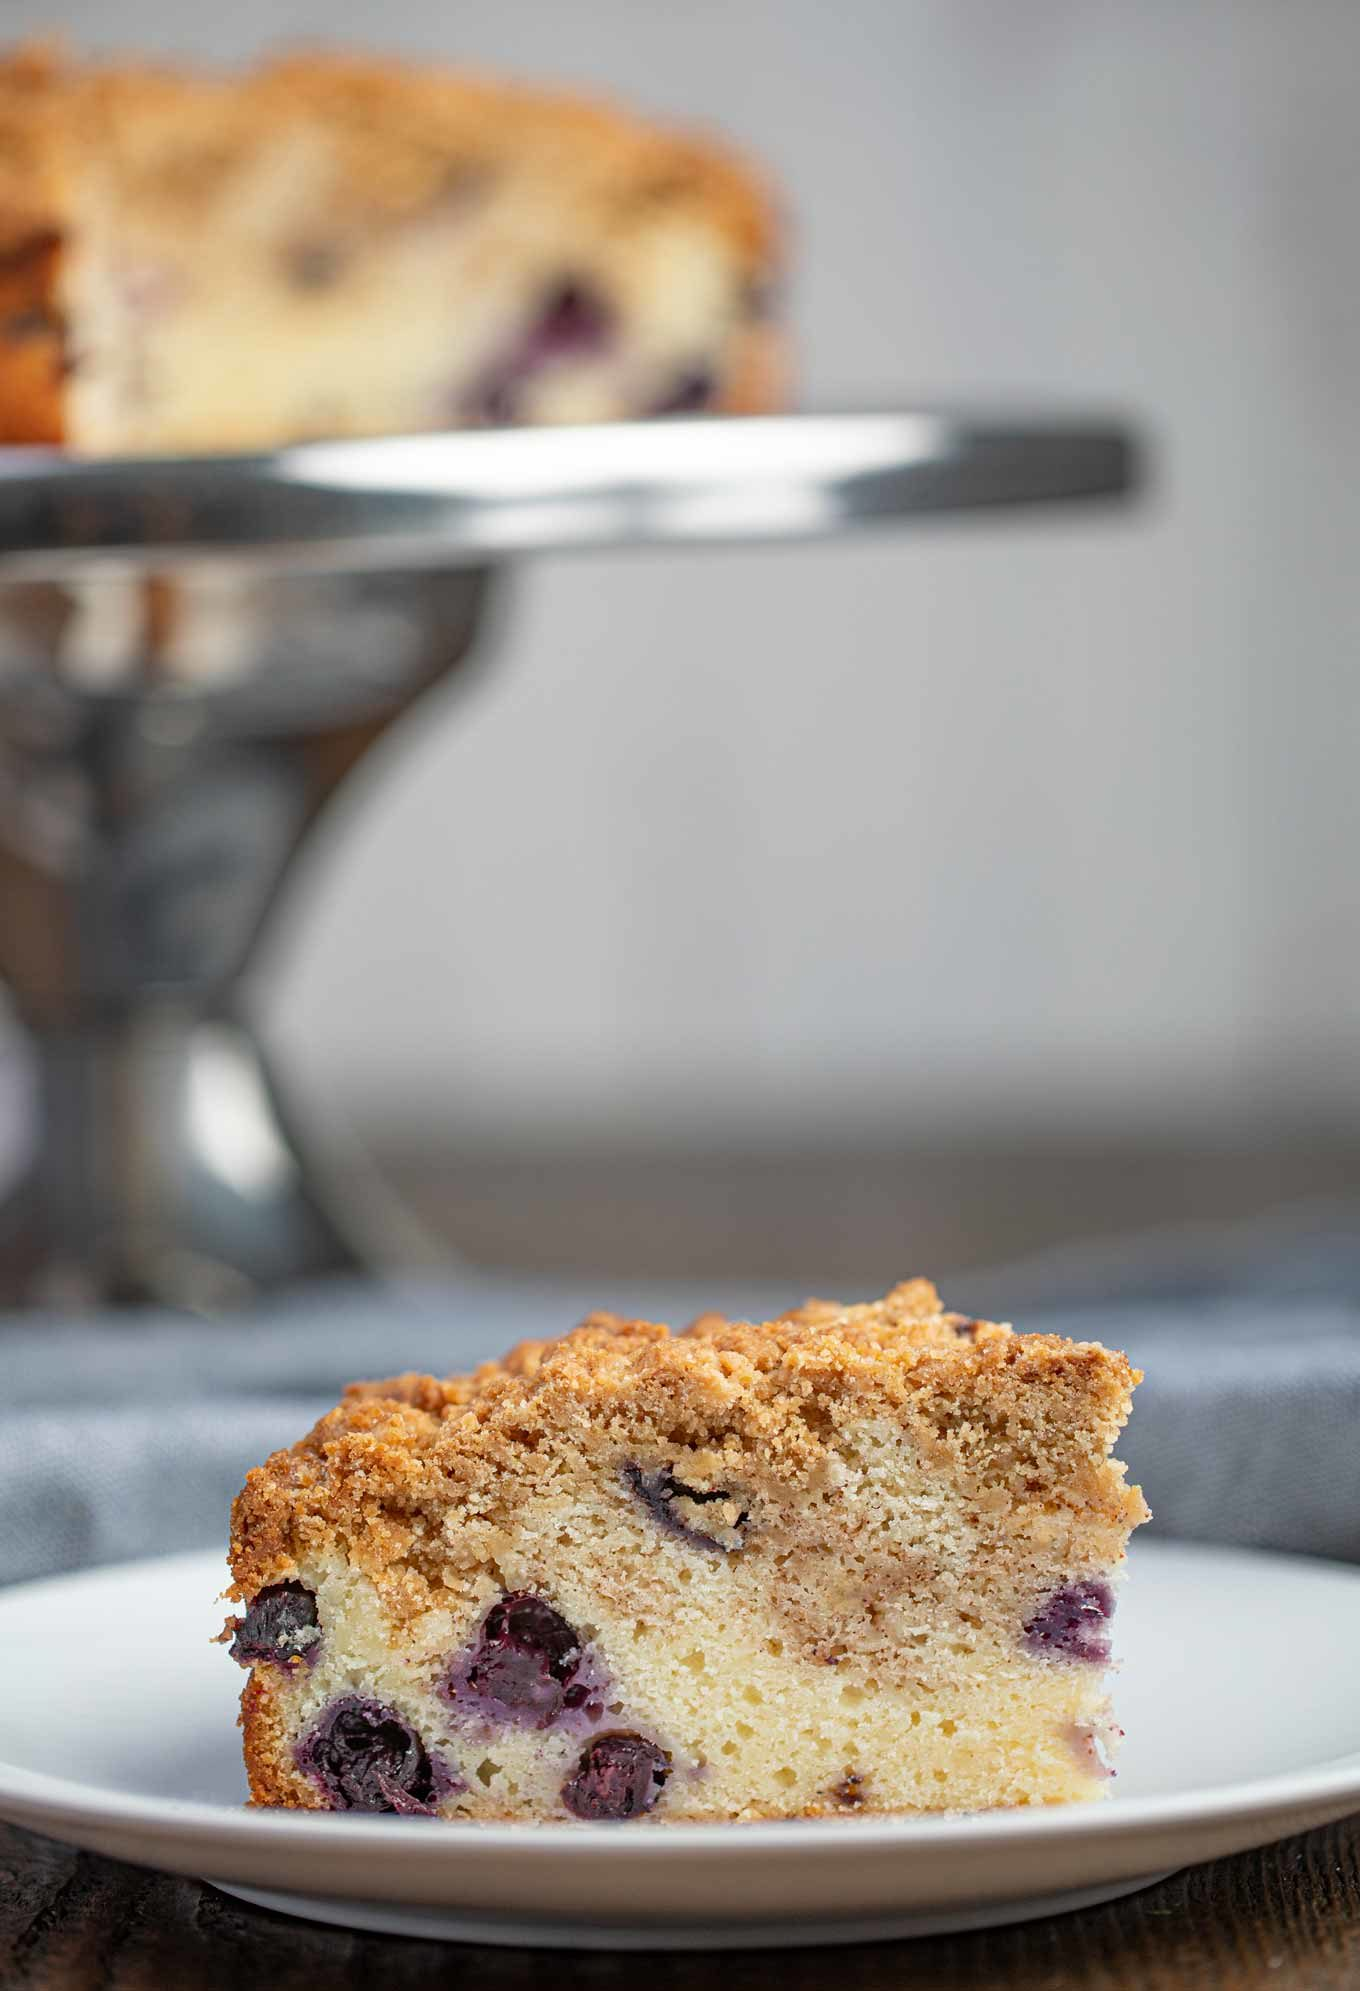 Slice of Blueberry Coffee Cake